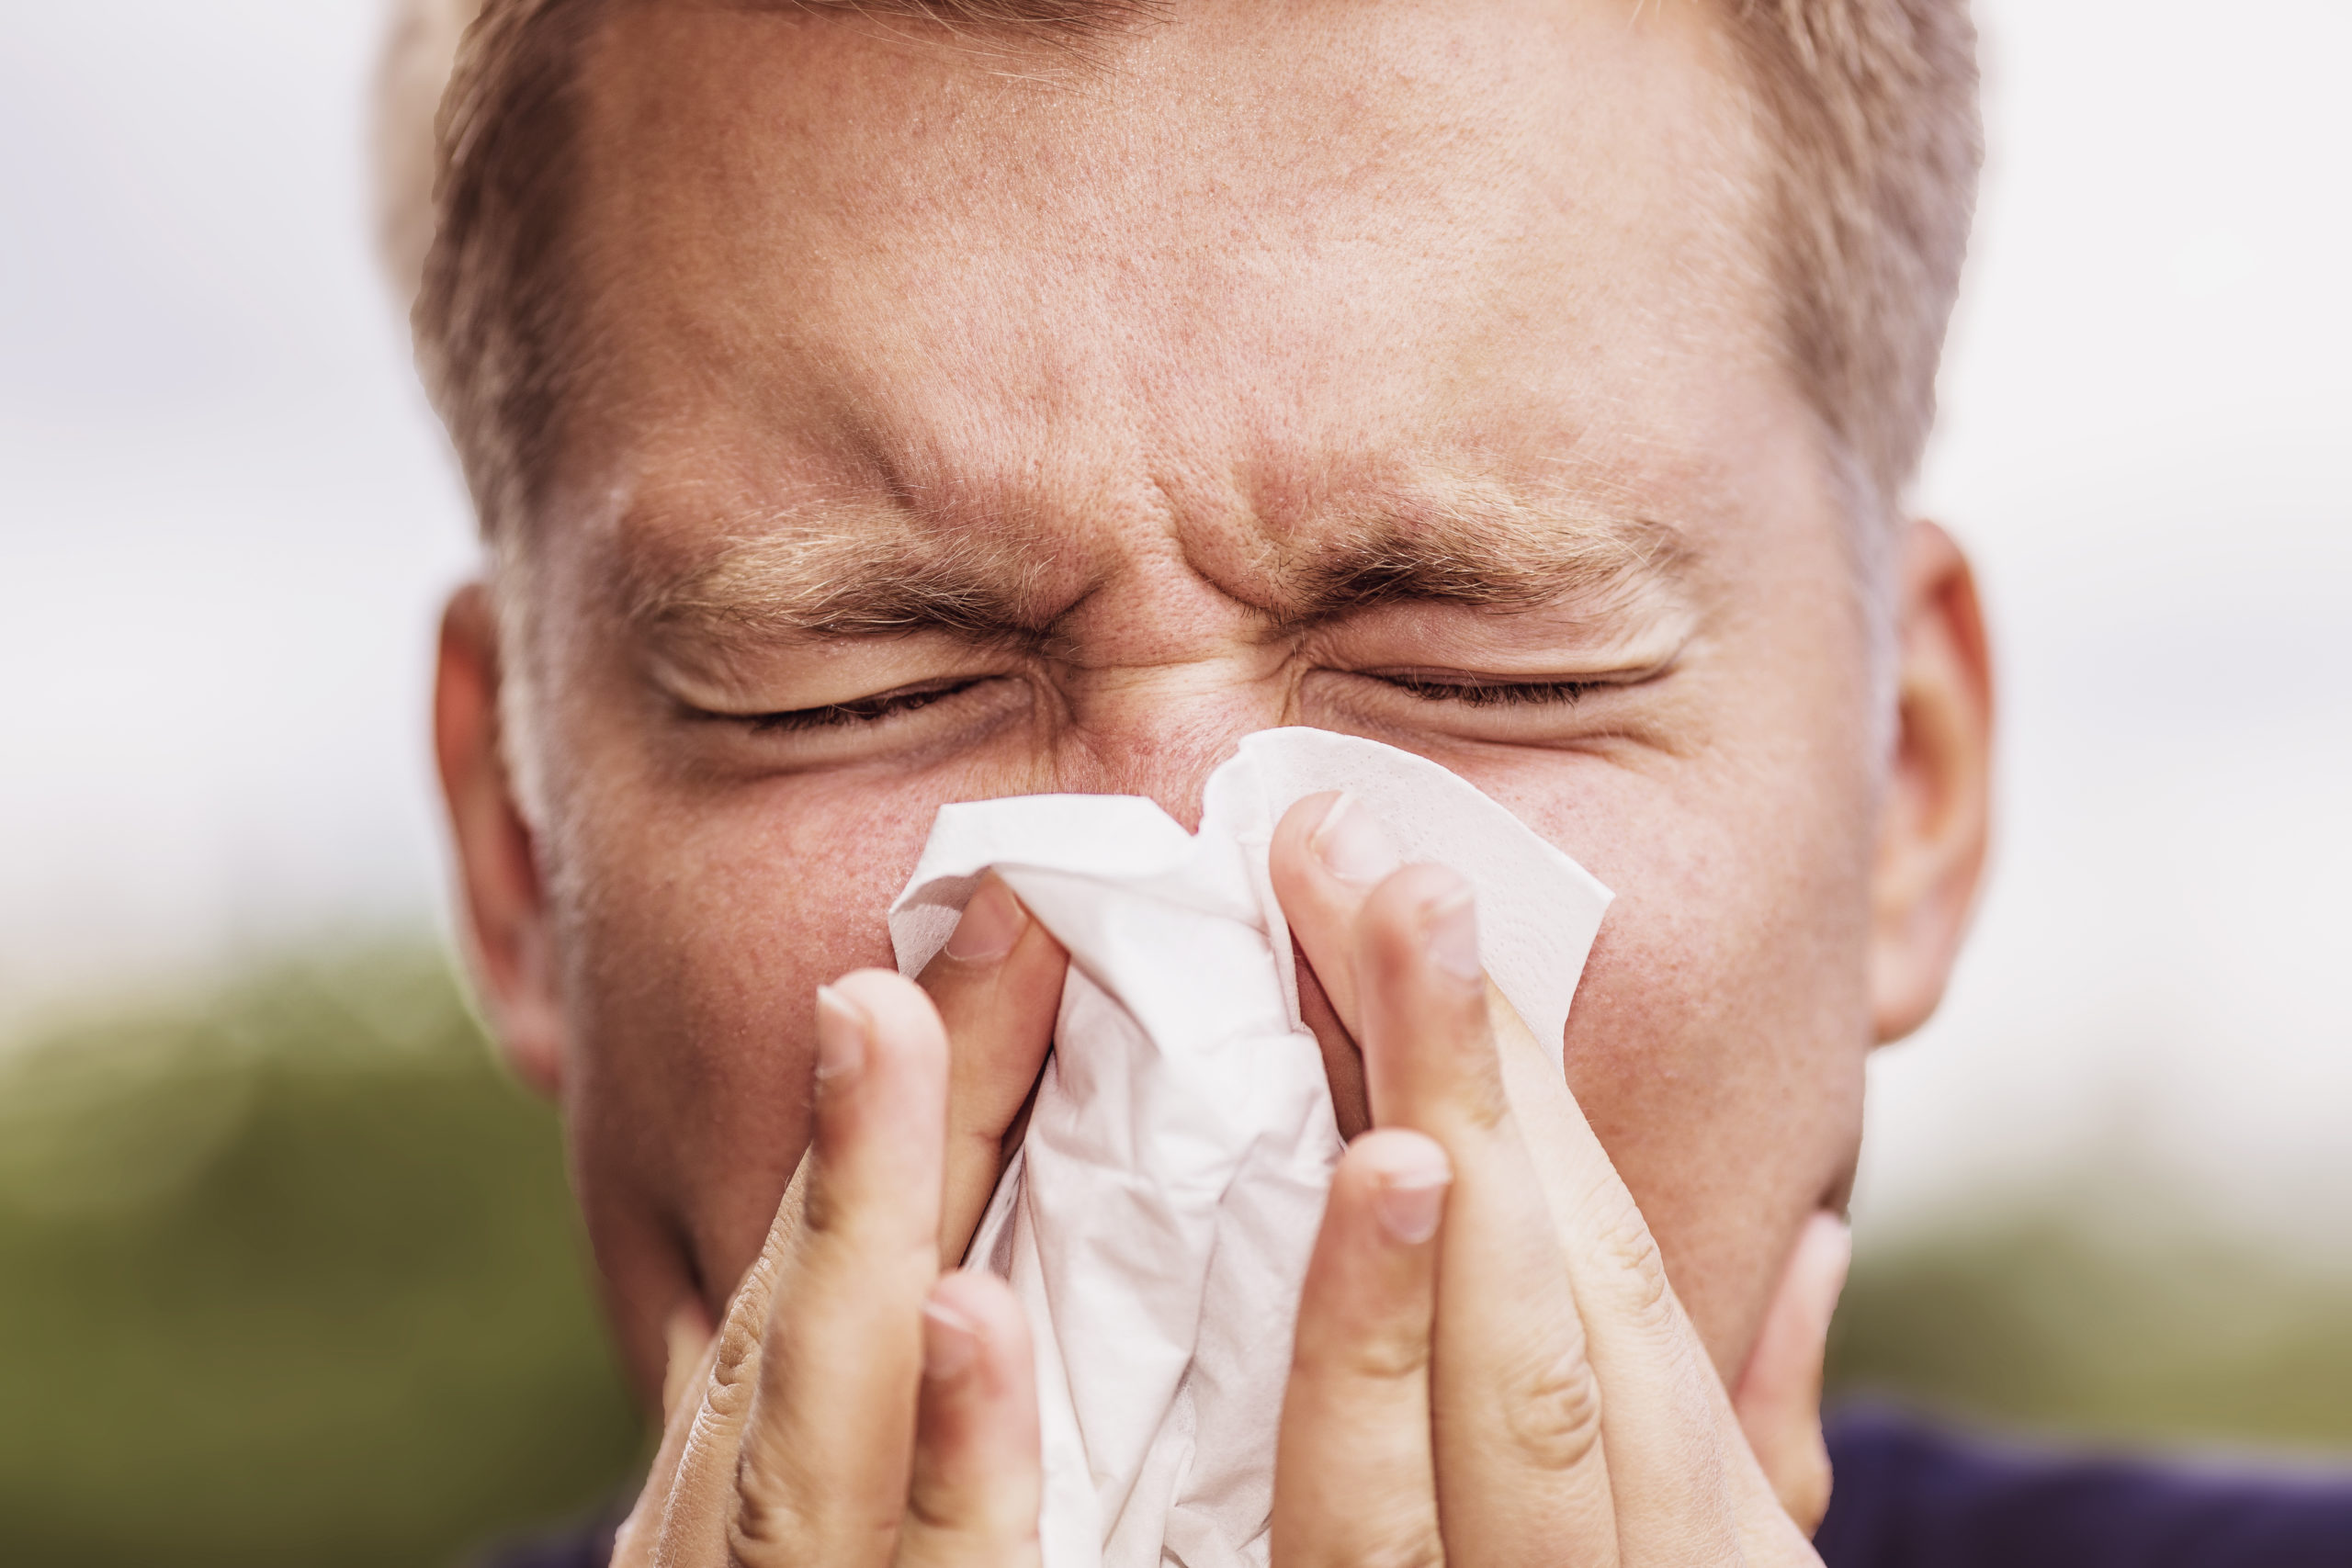 Man sneezing due to hay fever